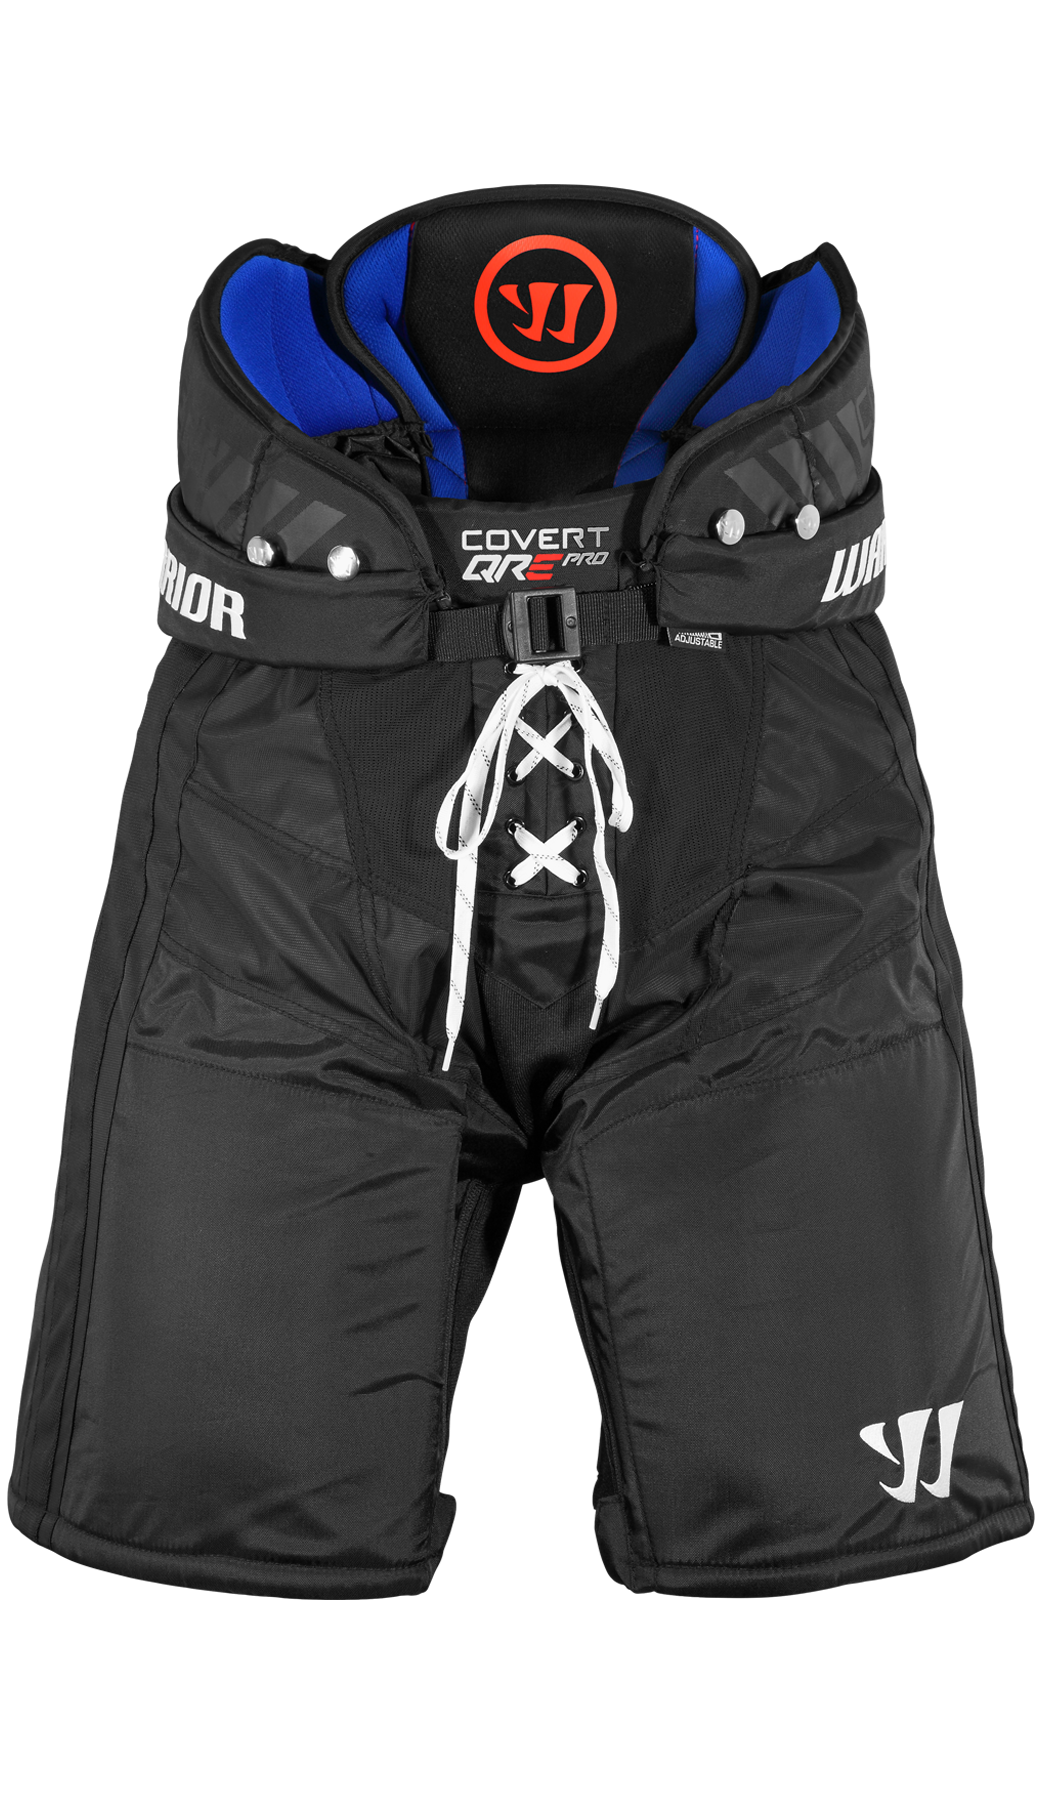 WARRIOR COVERT QRE PRO HOUSUT 1